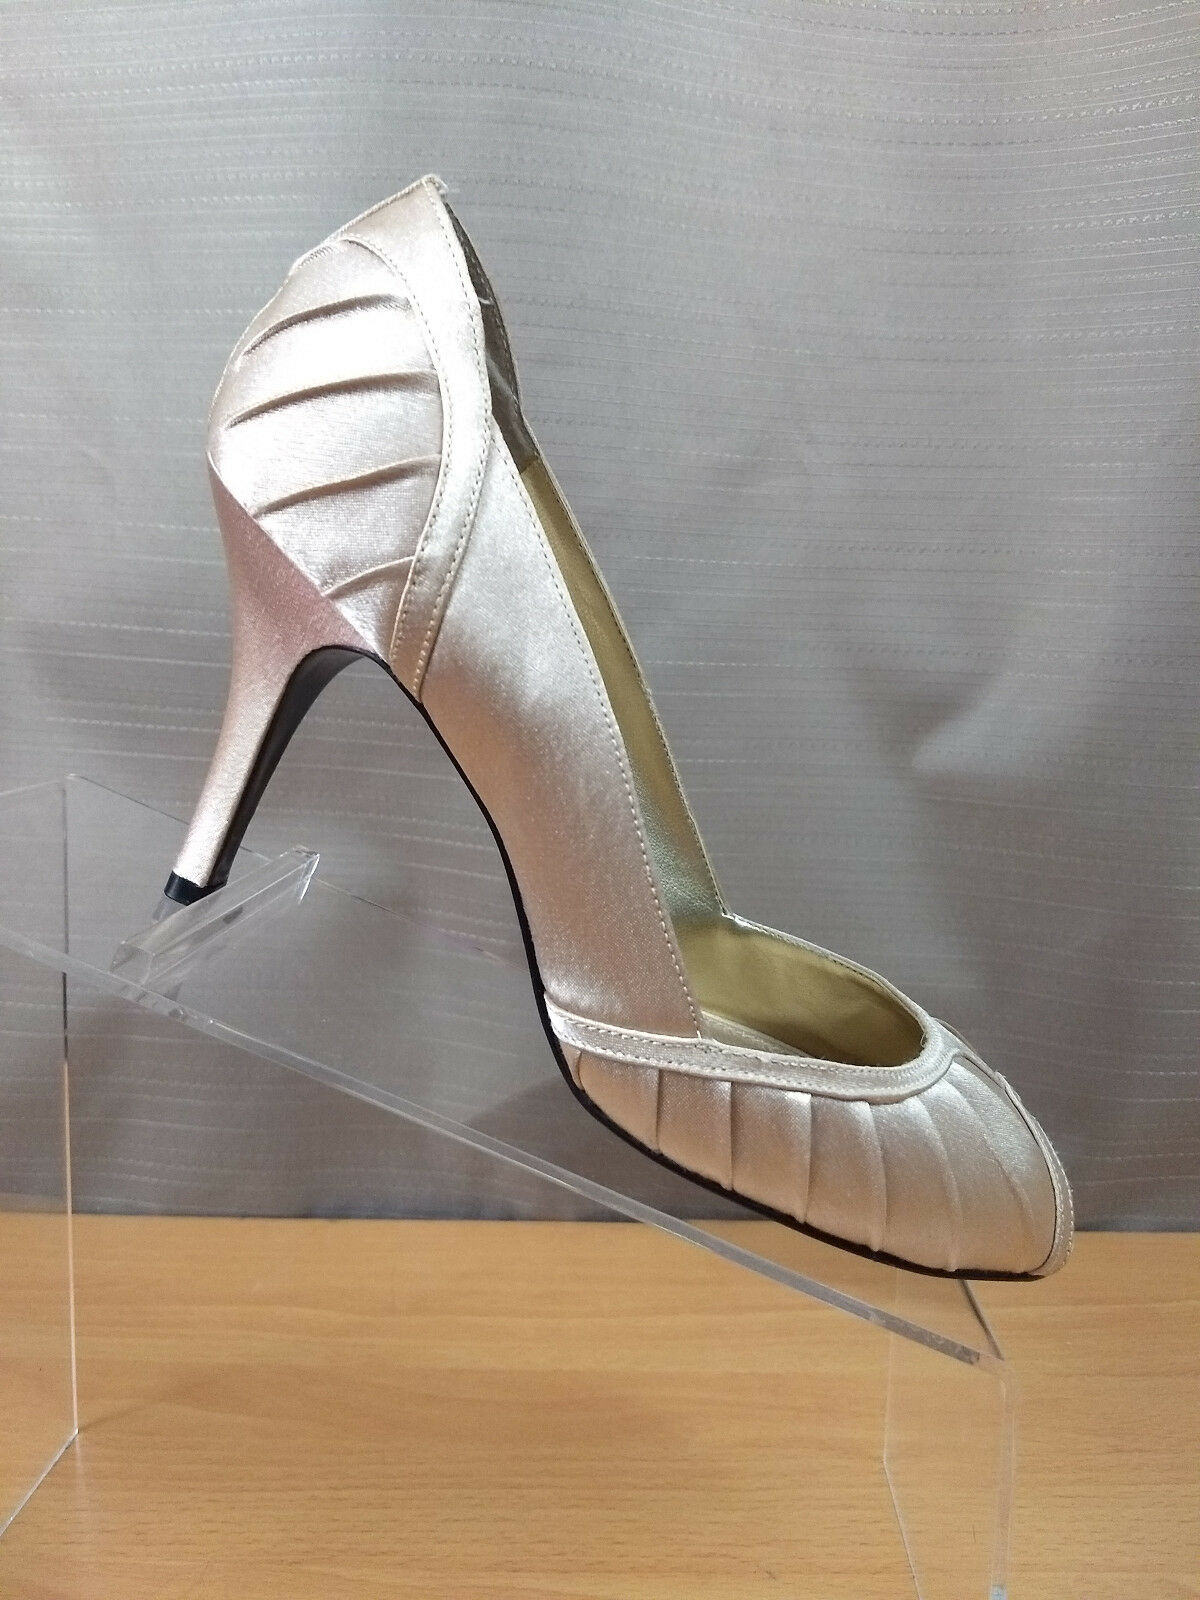 Nina New York Falana Pleated Peep Toe shoes Dyeable Heels Pumps Size 8M